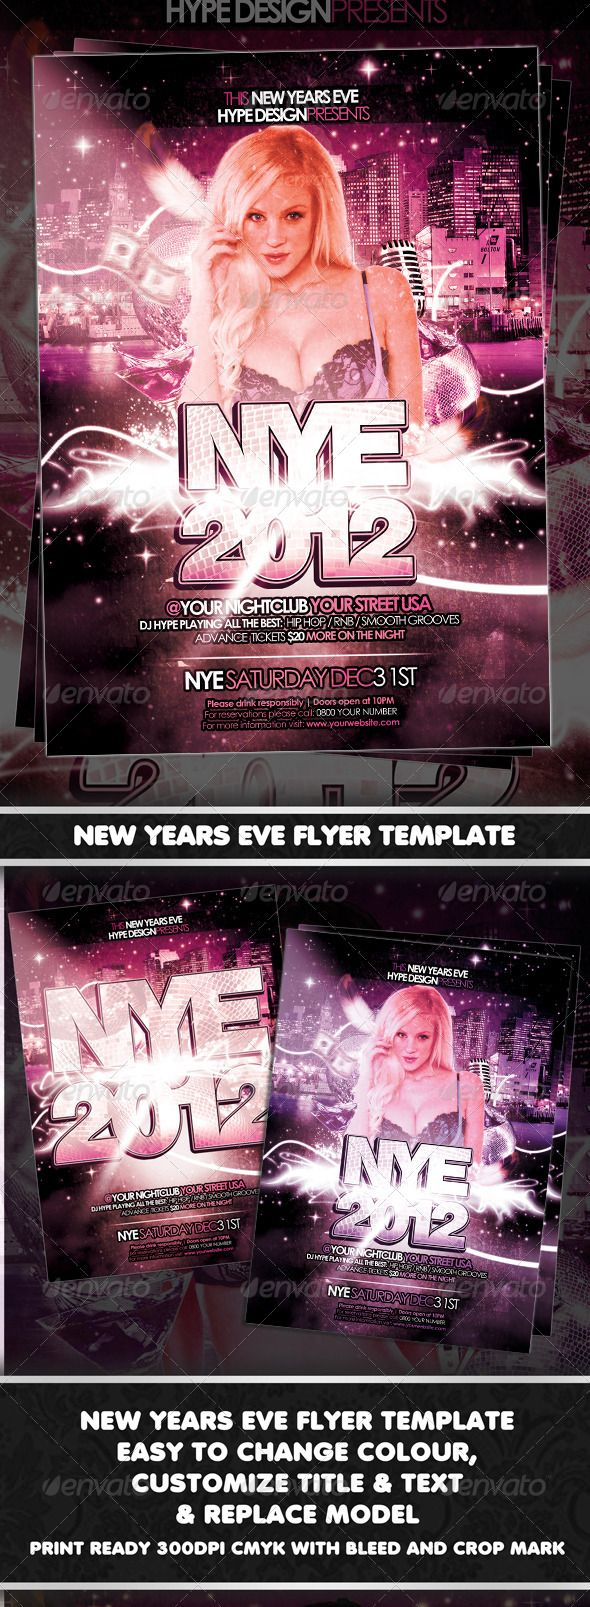 New Years Eve Flyer Template New year's eve flyer, Flyer